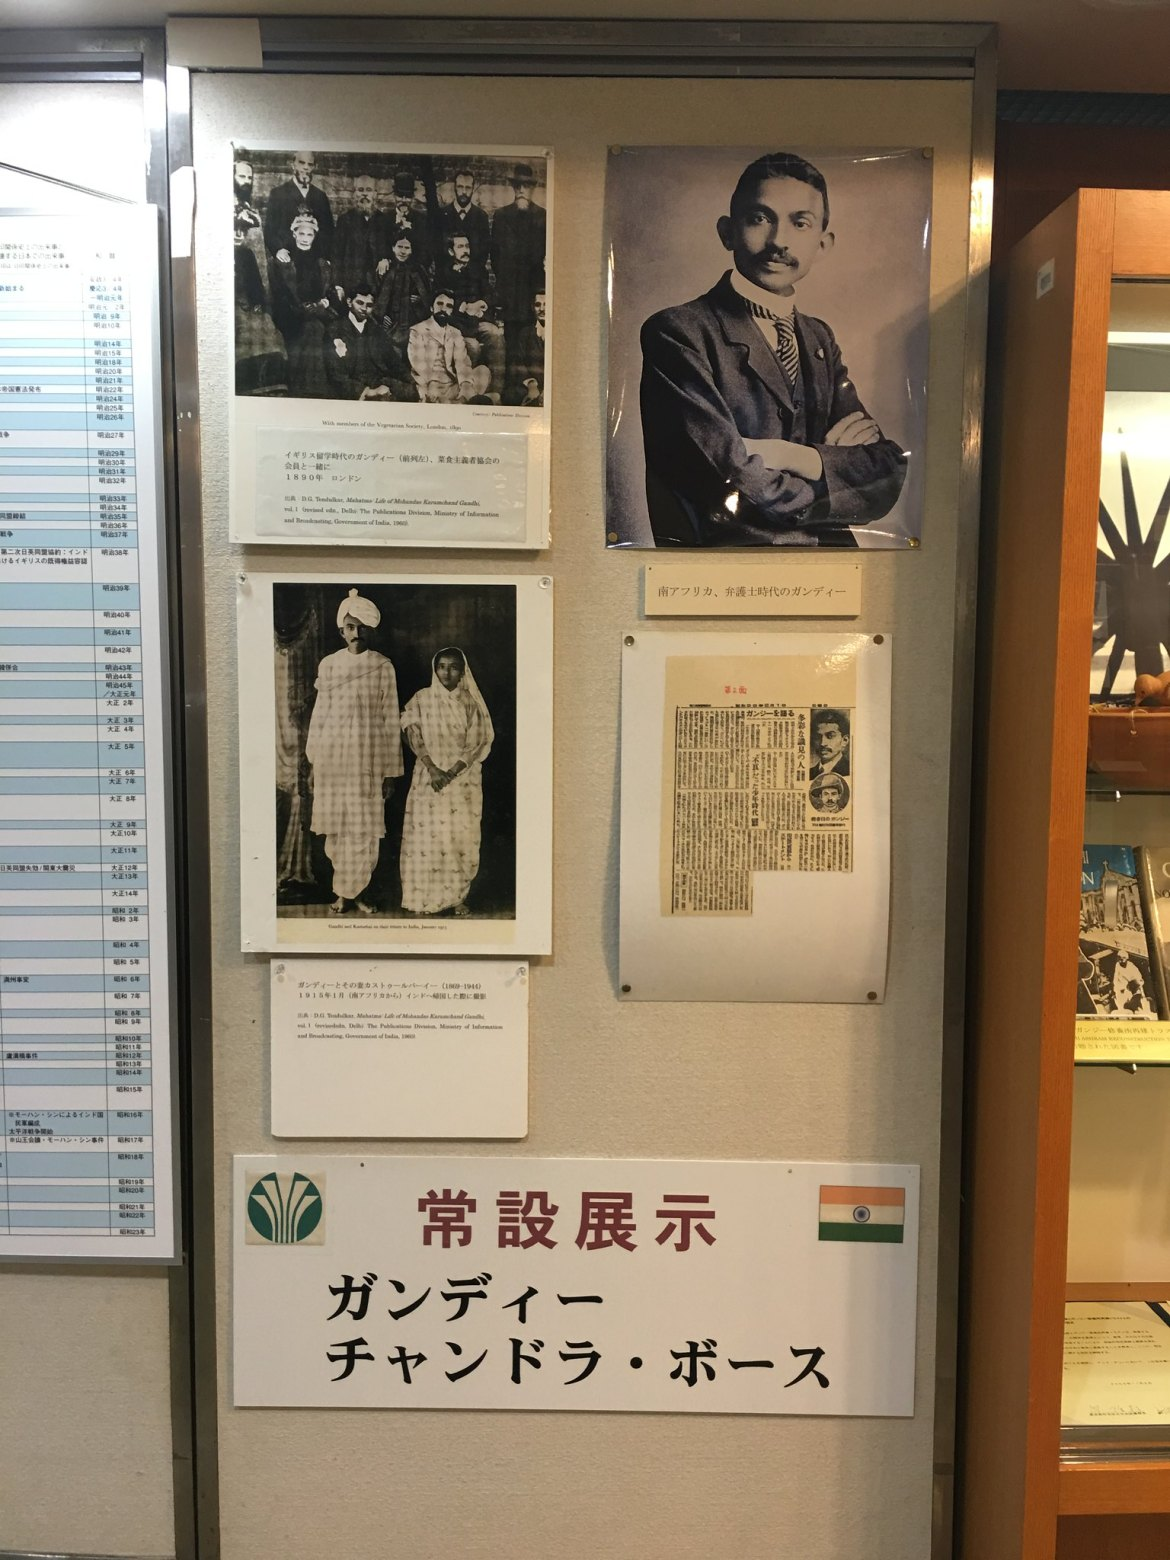 Mahatma Gandhi statue at suginami Ward Library